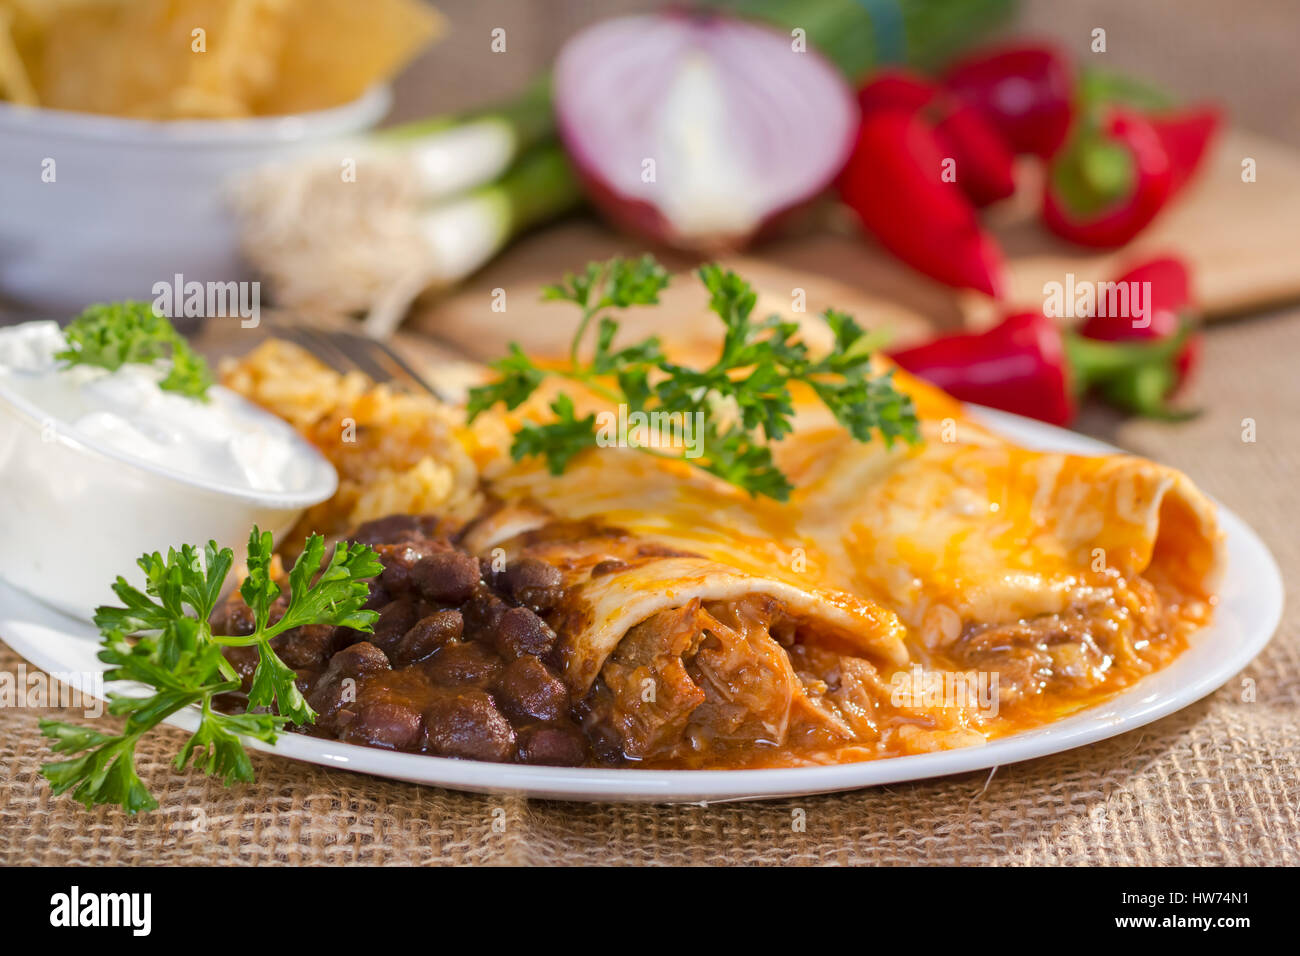 Southwest beef enchilada with sourcream and black beans. - Stock Image